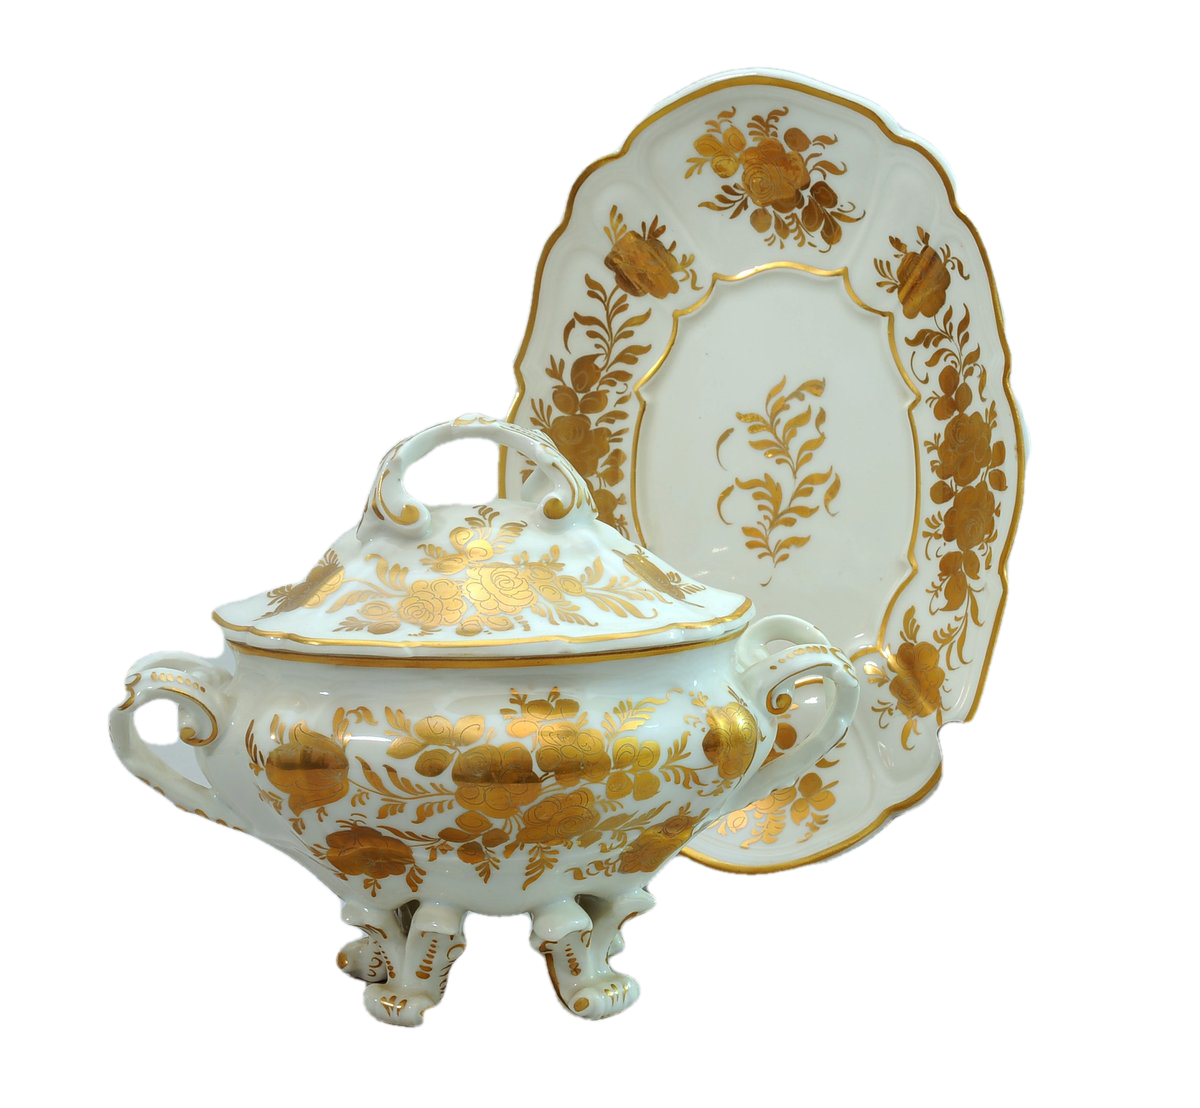 French Porcelain Covered Sugar Bowl